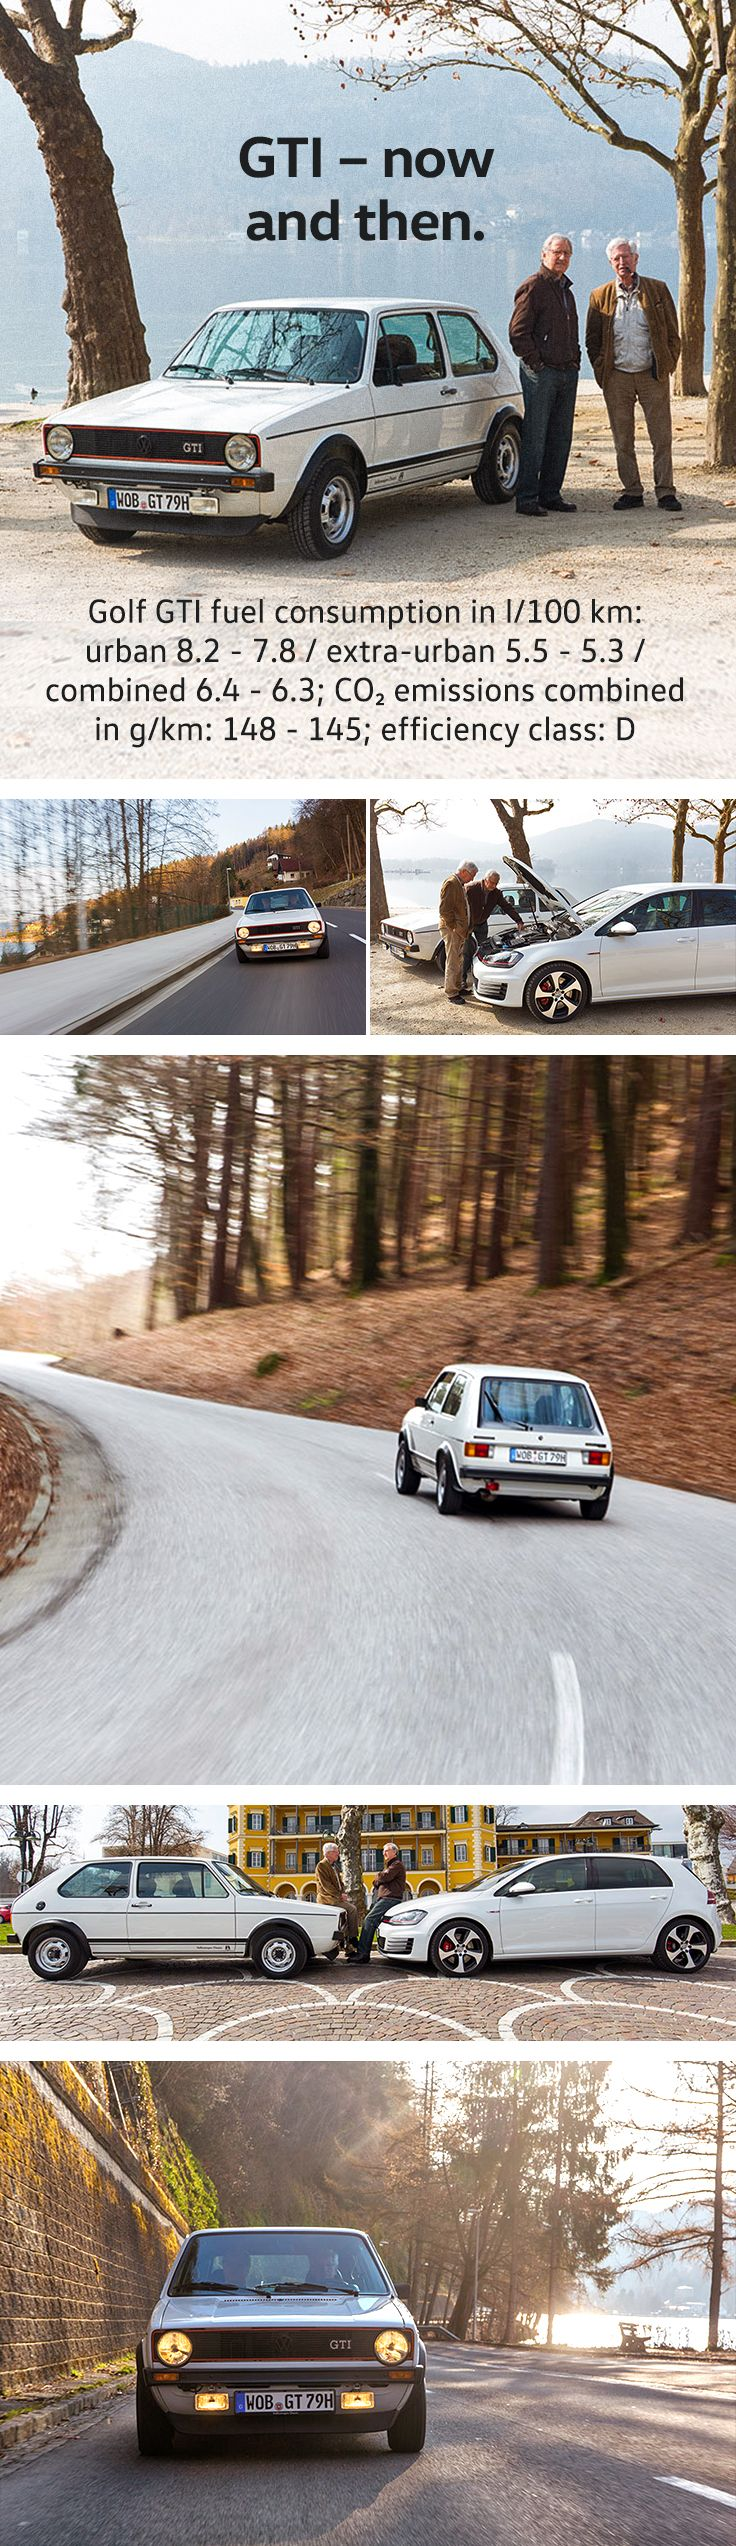 When a legend meets its successor. Anton Konrad and Herbert Schuster both contributed to creating the original Golf GTI four decades ago. They both met up for a drive around the Wörthersee in the classic Golf I GTI and the seventh edition of this legendary Volkswagen model.